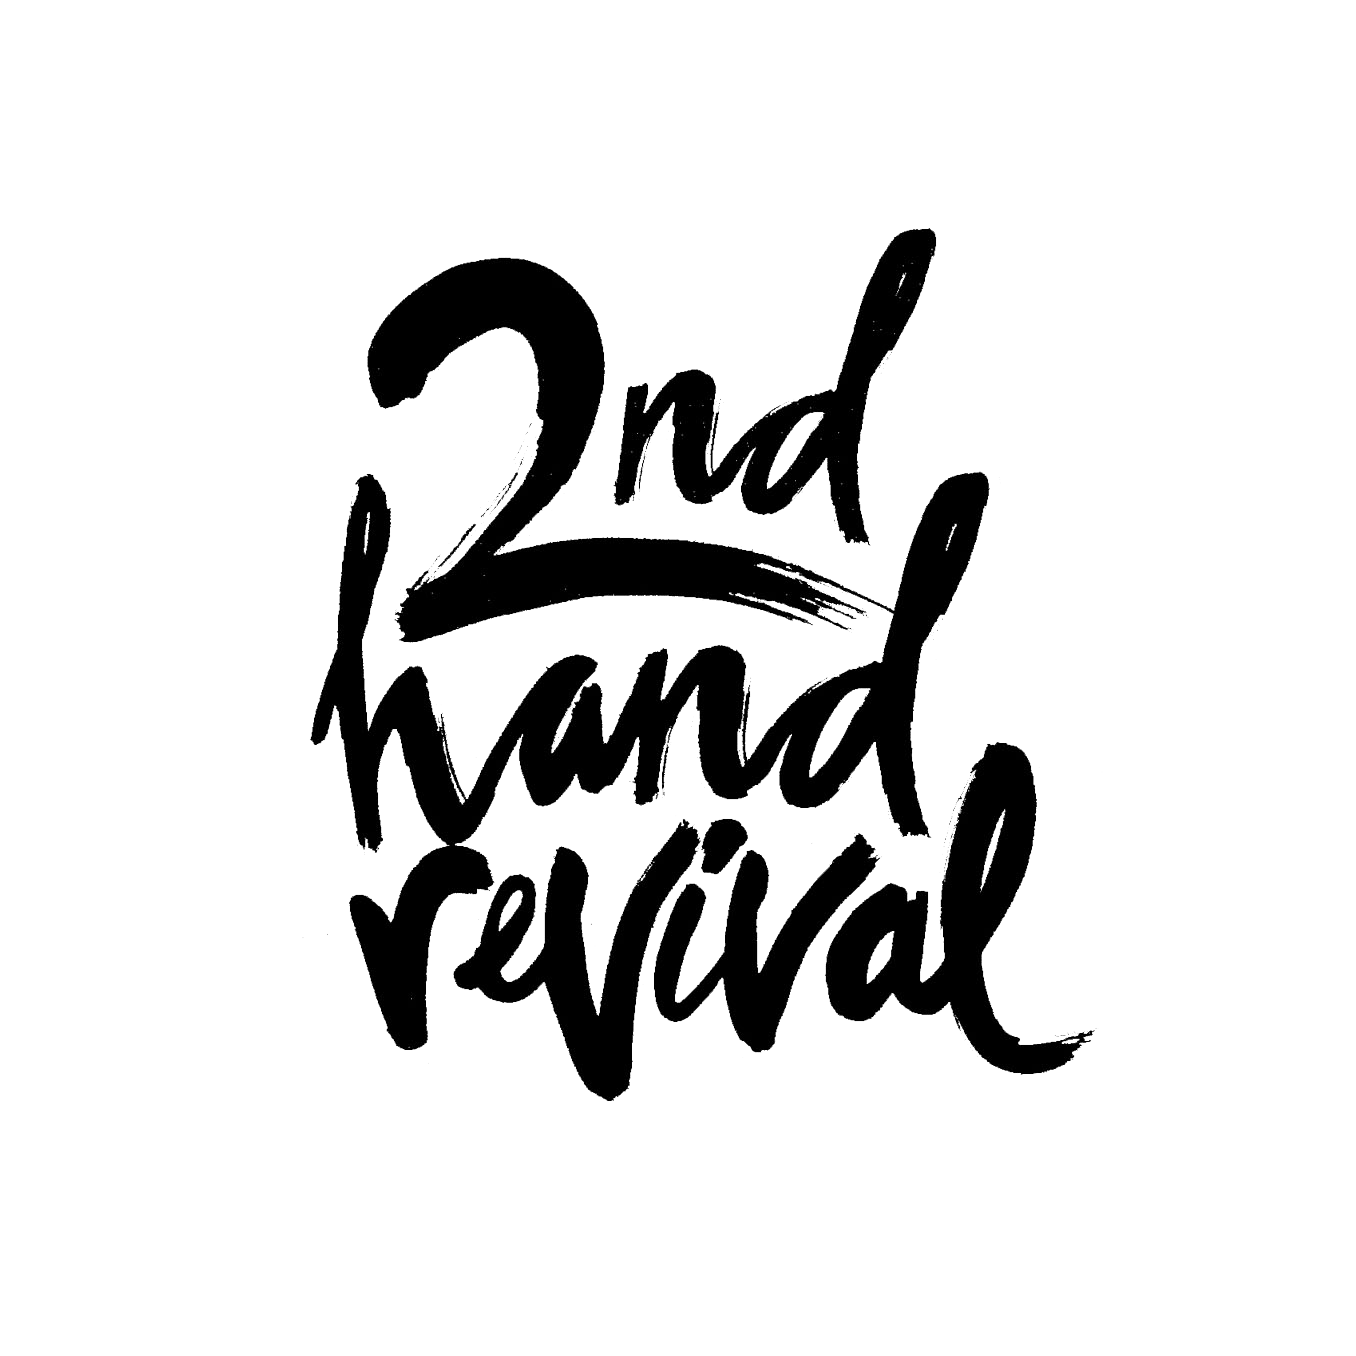 2nd Hand Revival